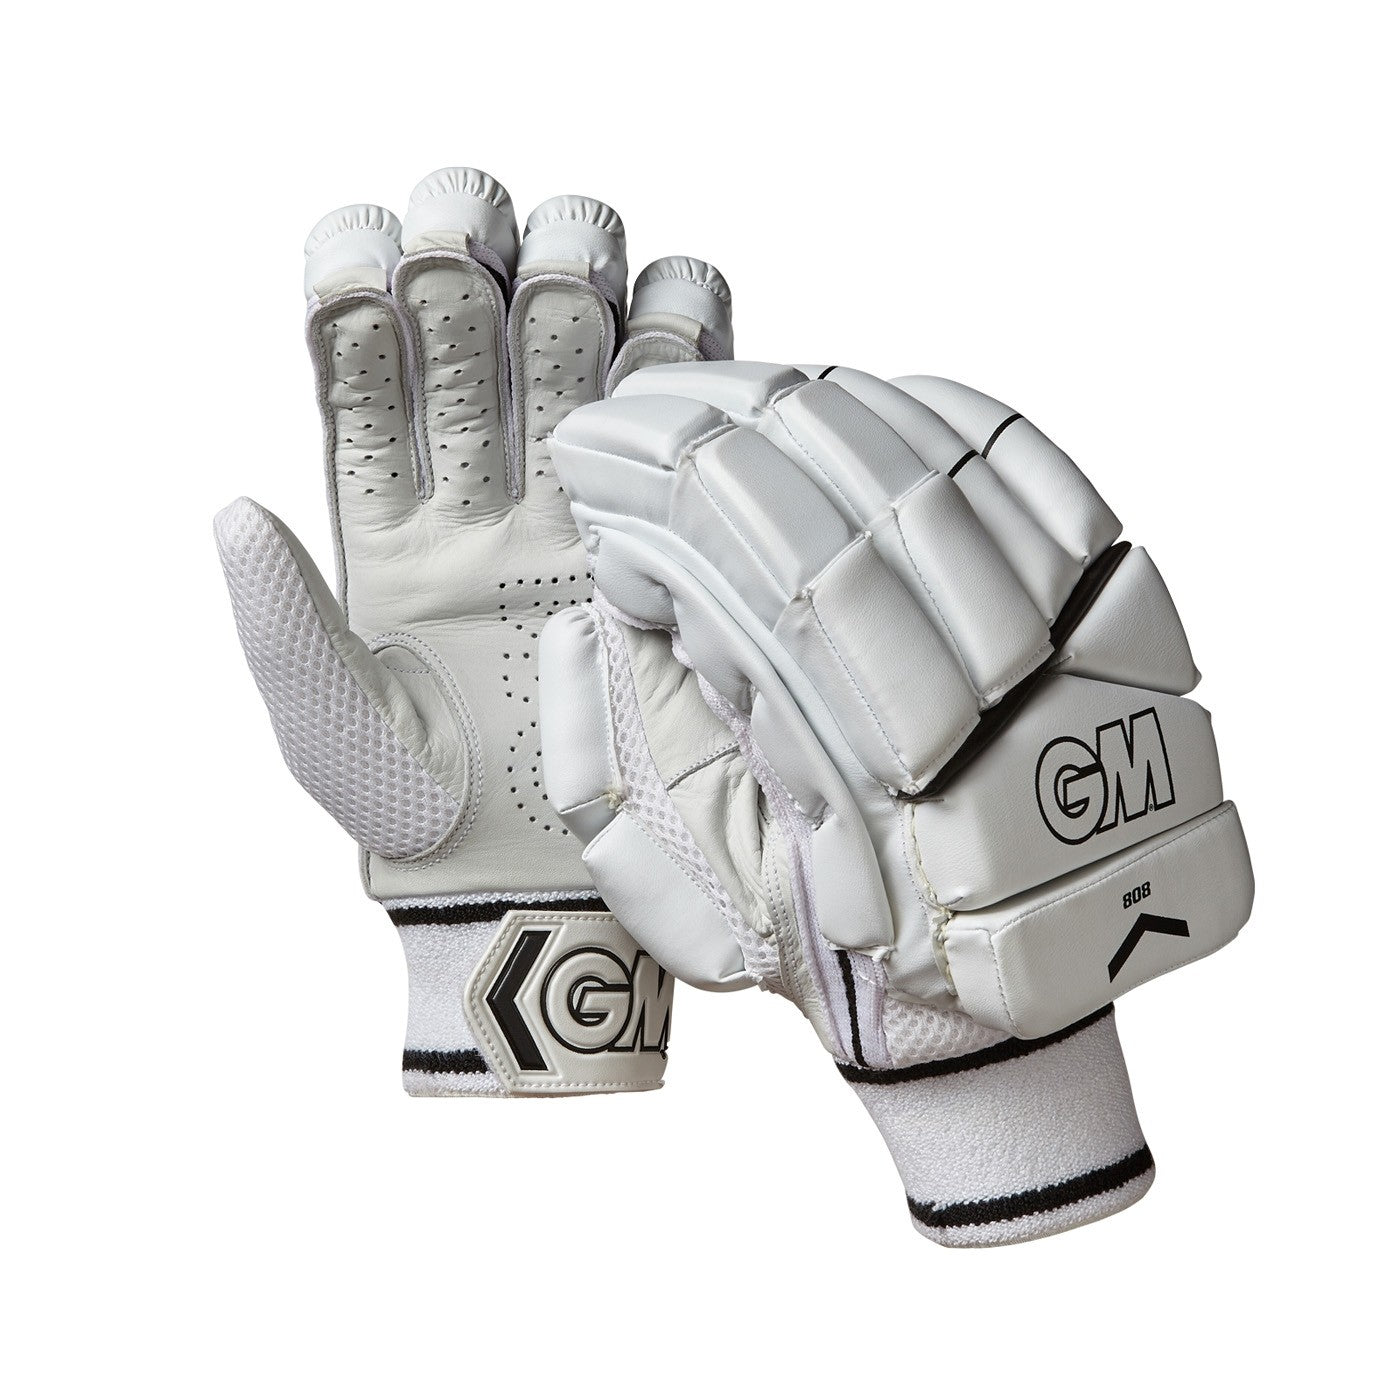 808 Batting Gloves